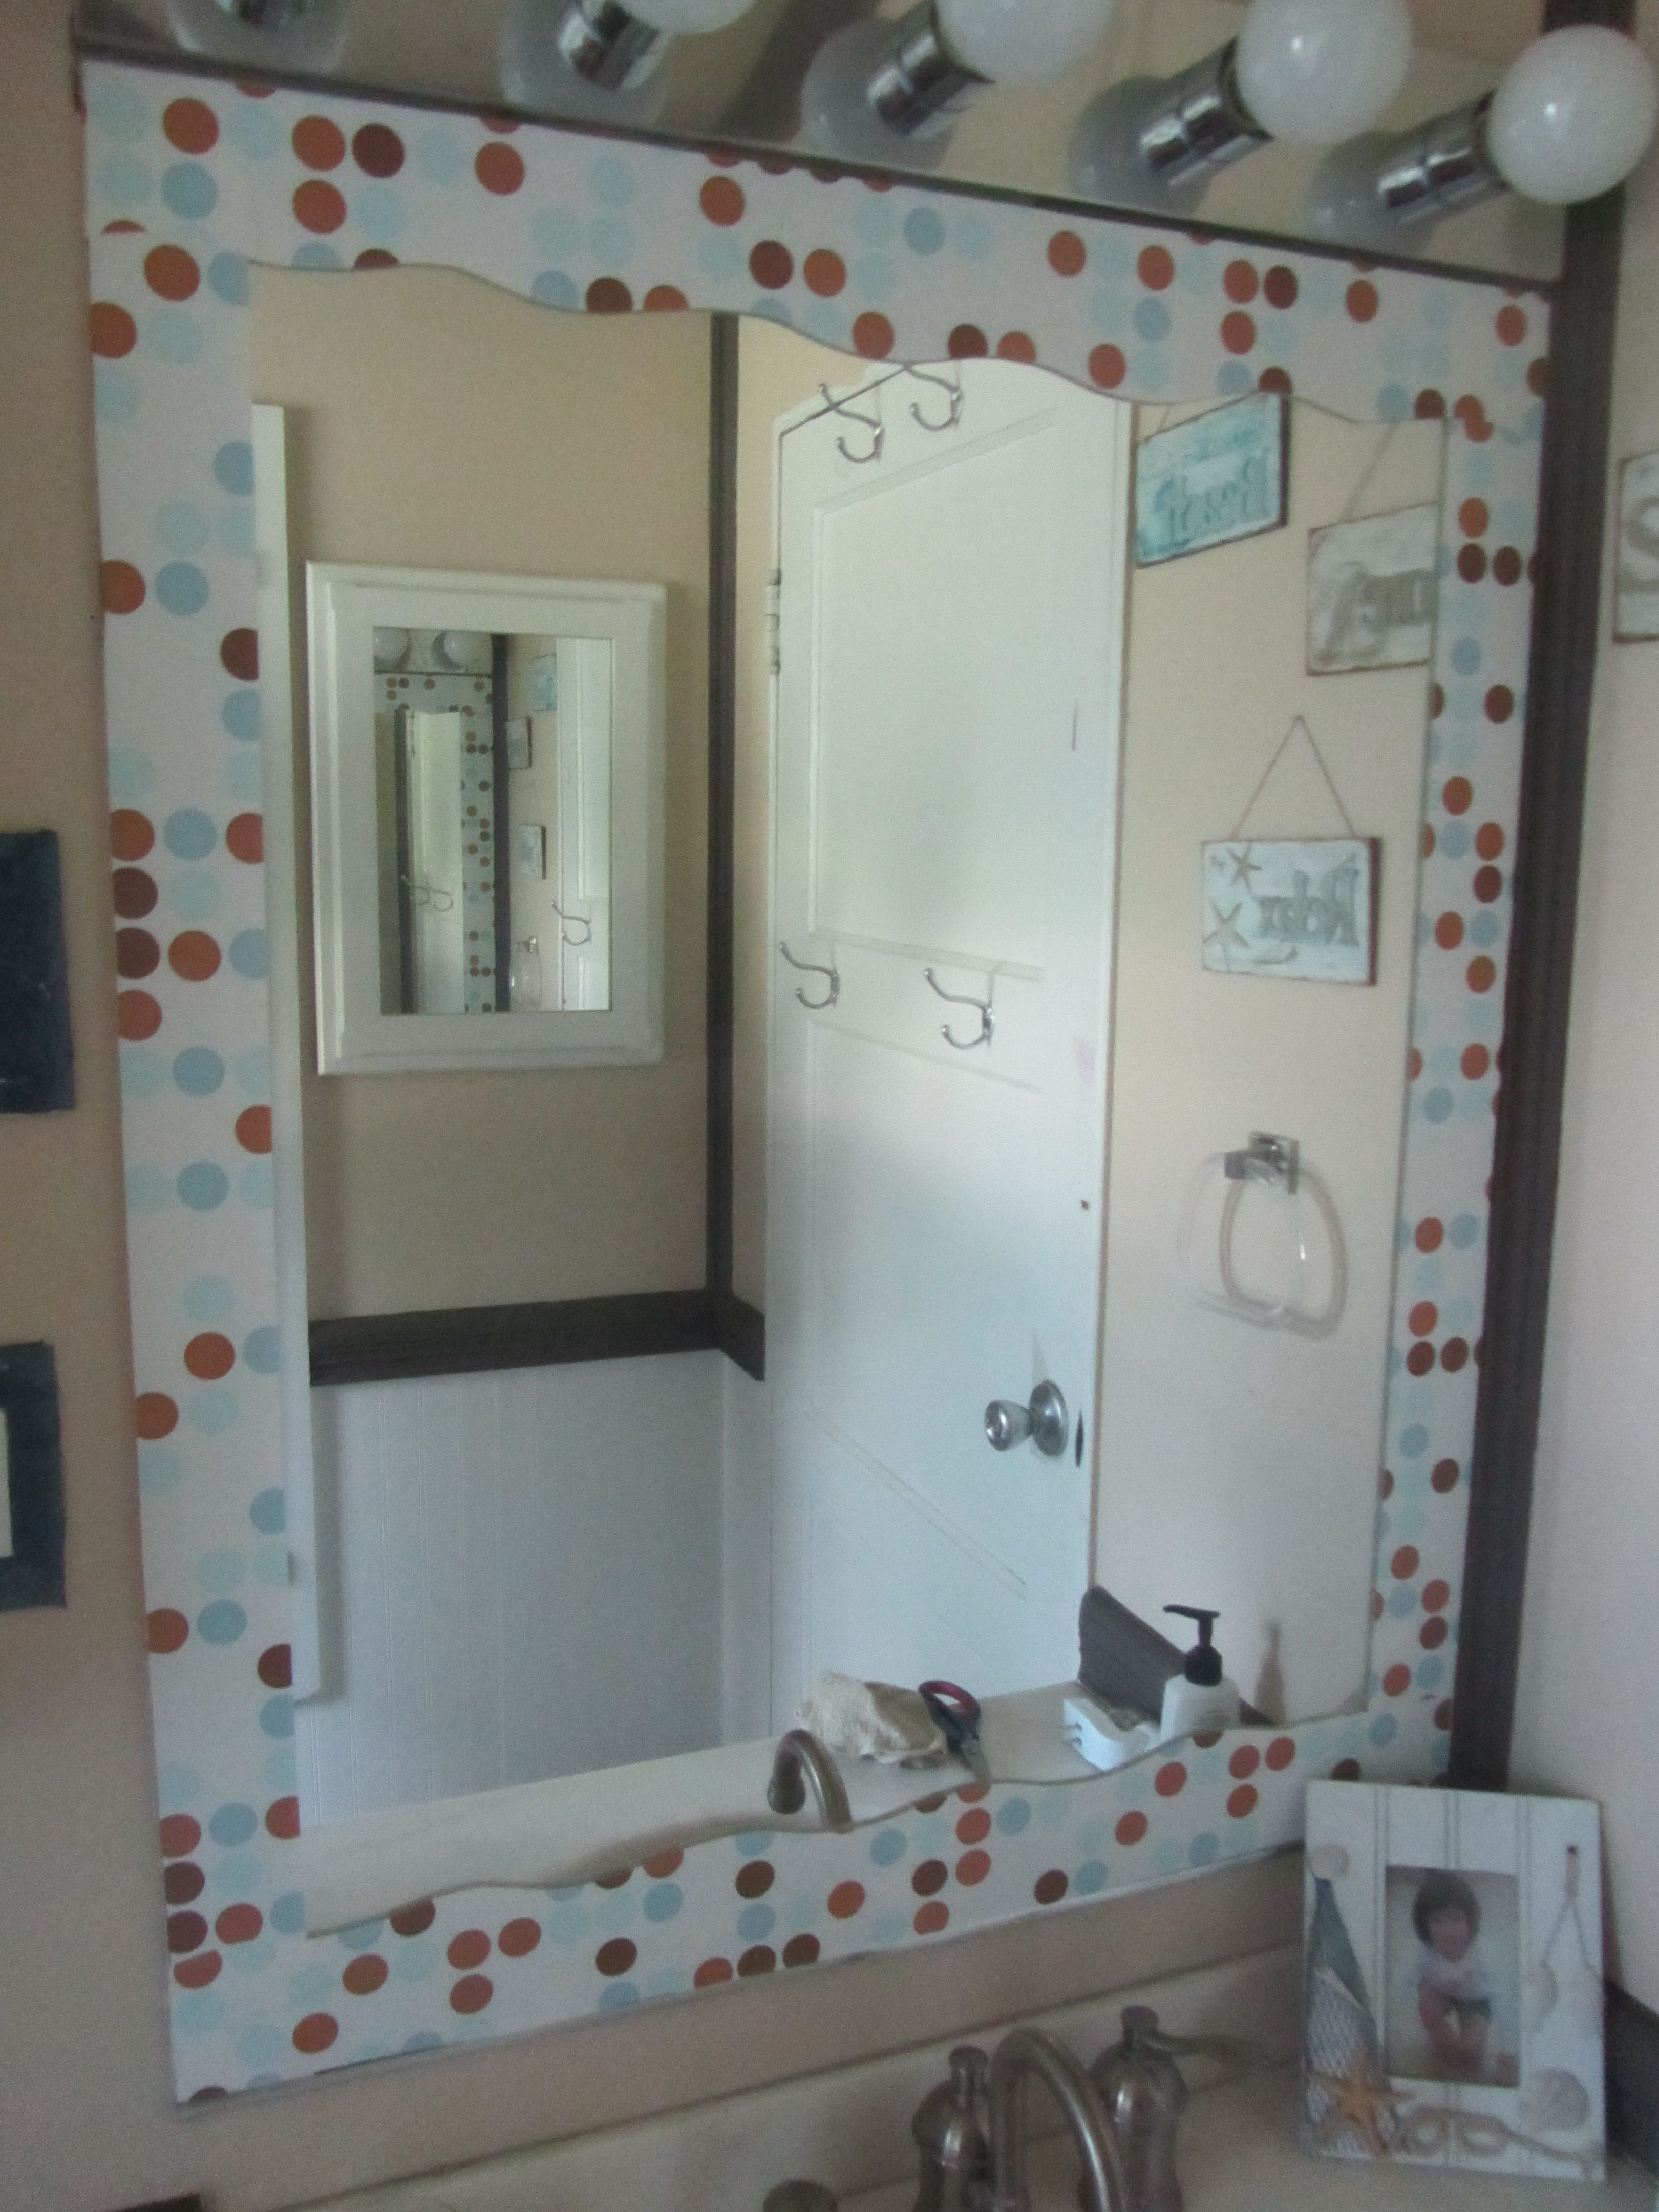 Contact paper border on mirror DIY